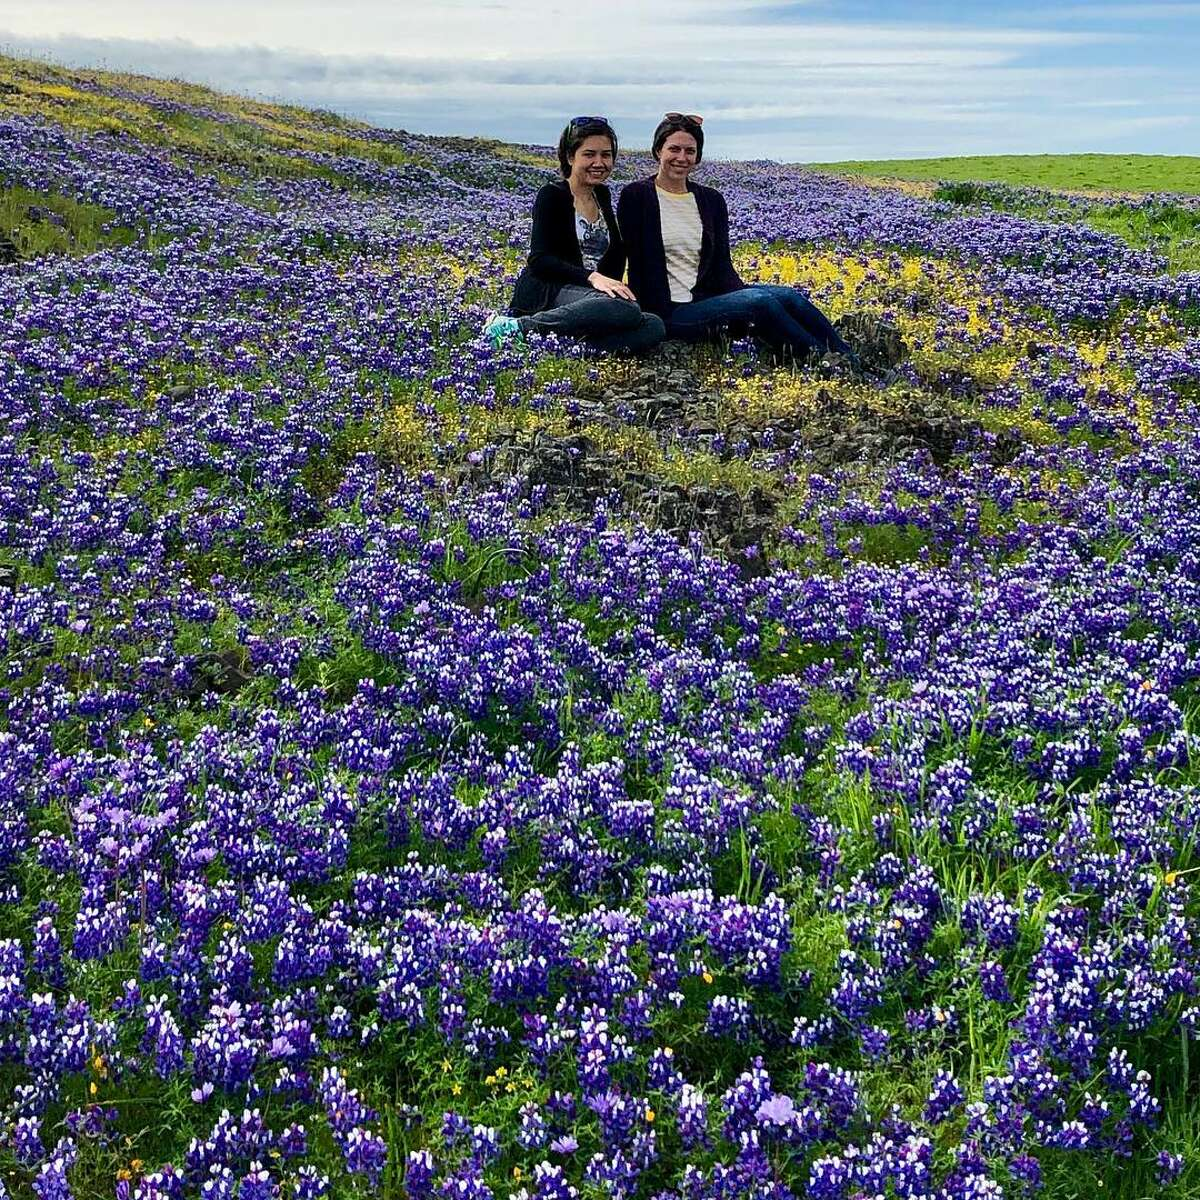 A dazzling array of flowers have been blooming in Butte County. Via @Amandaleigh486